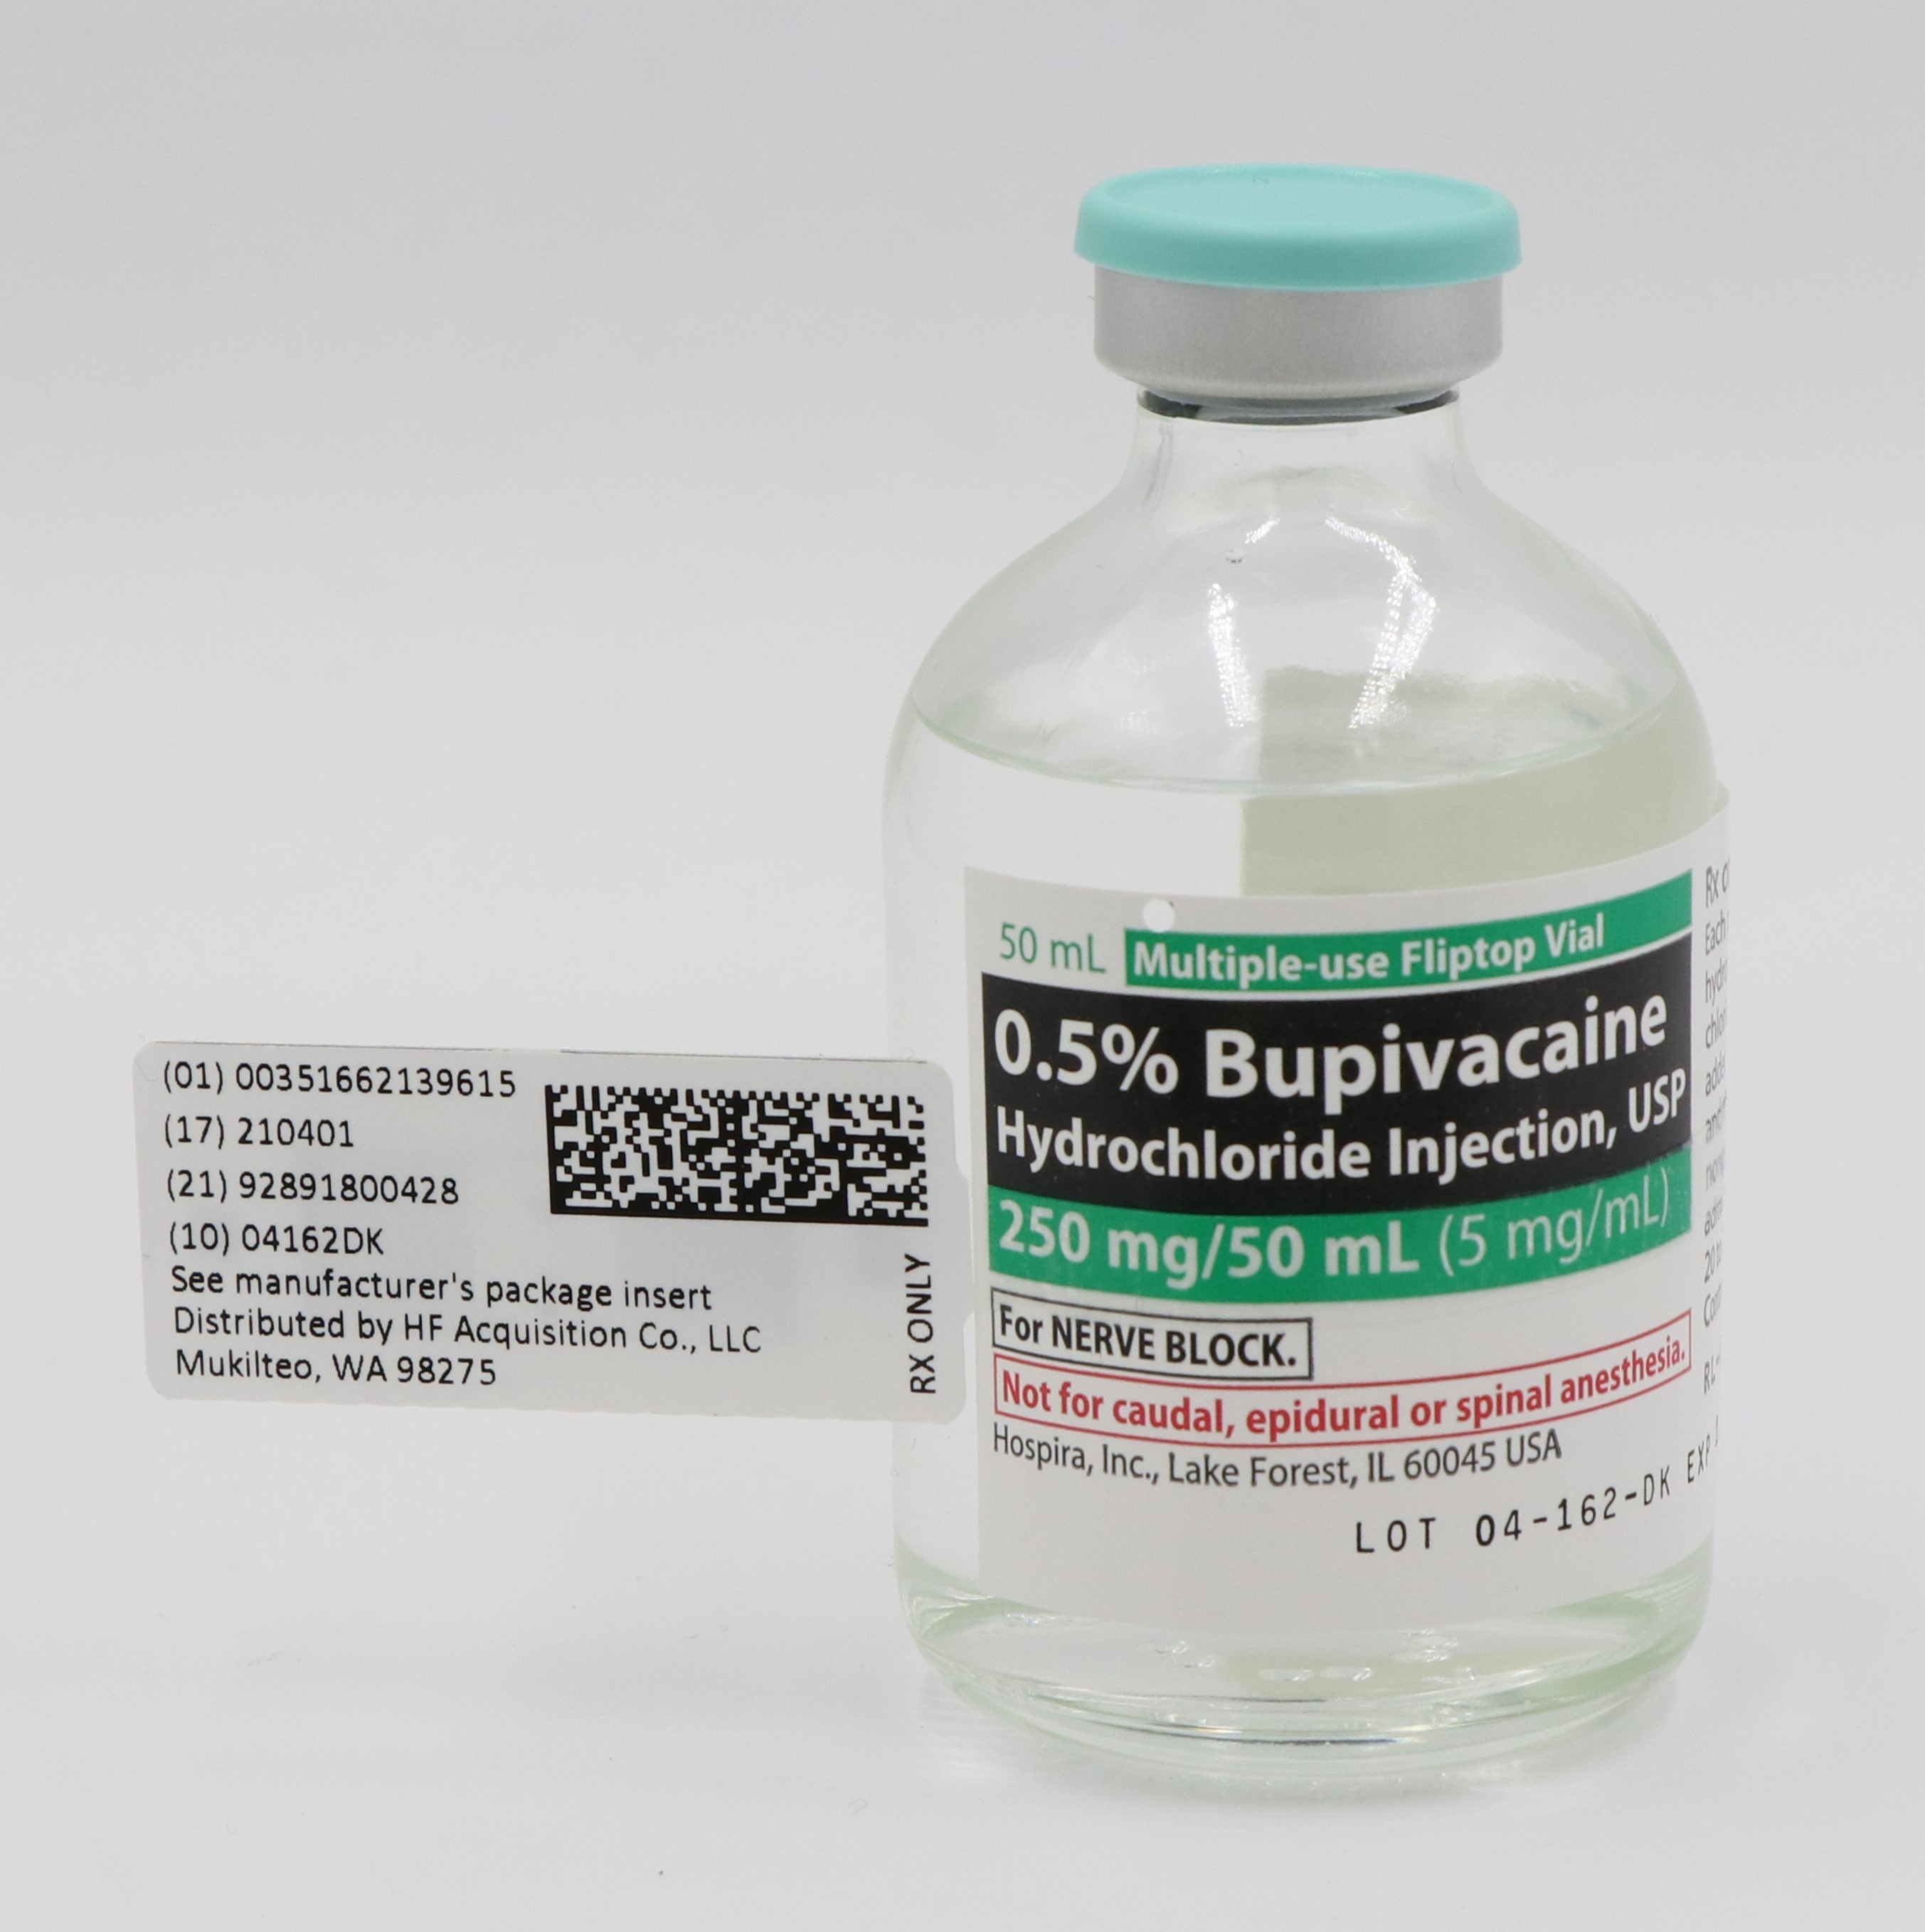 SERIALIZED VIAL LABELING